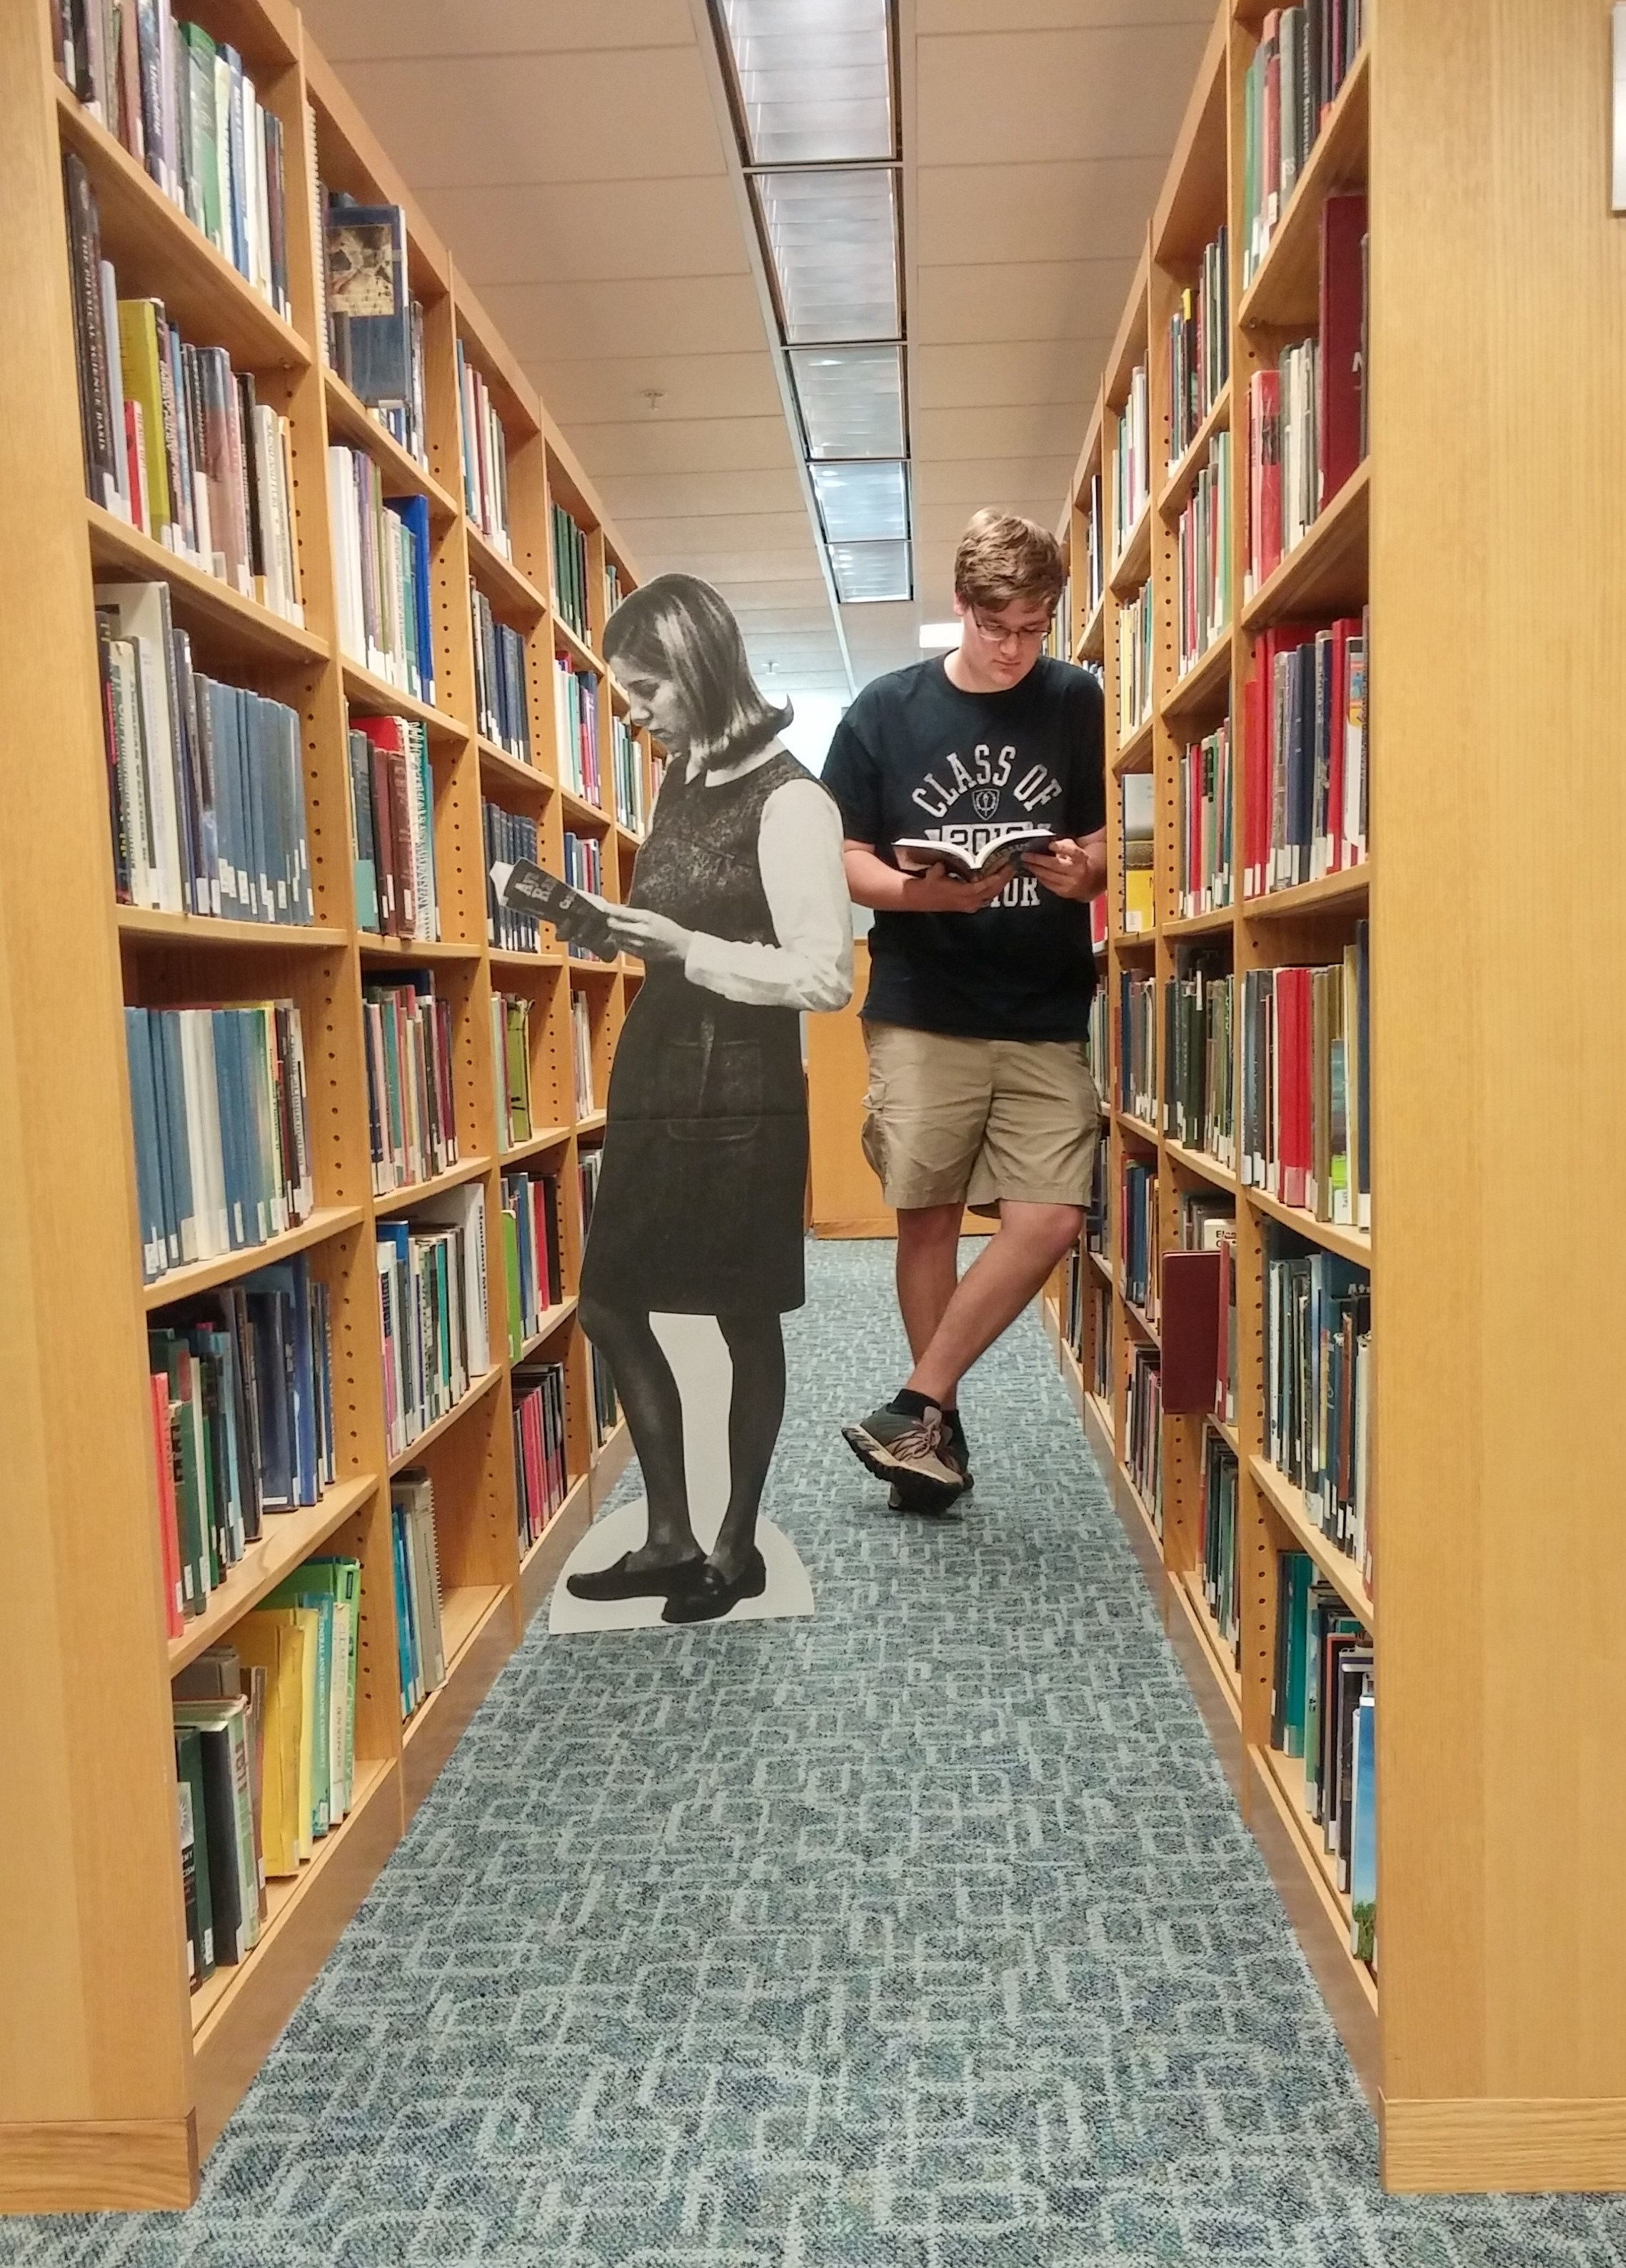 Student between rows of books in library